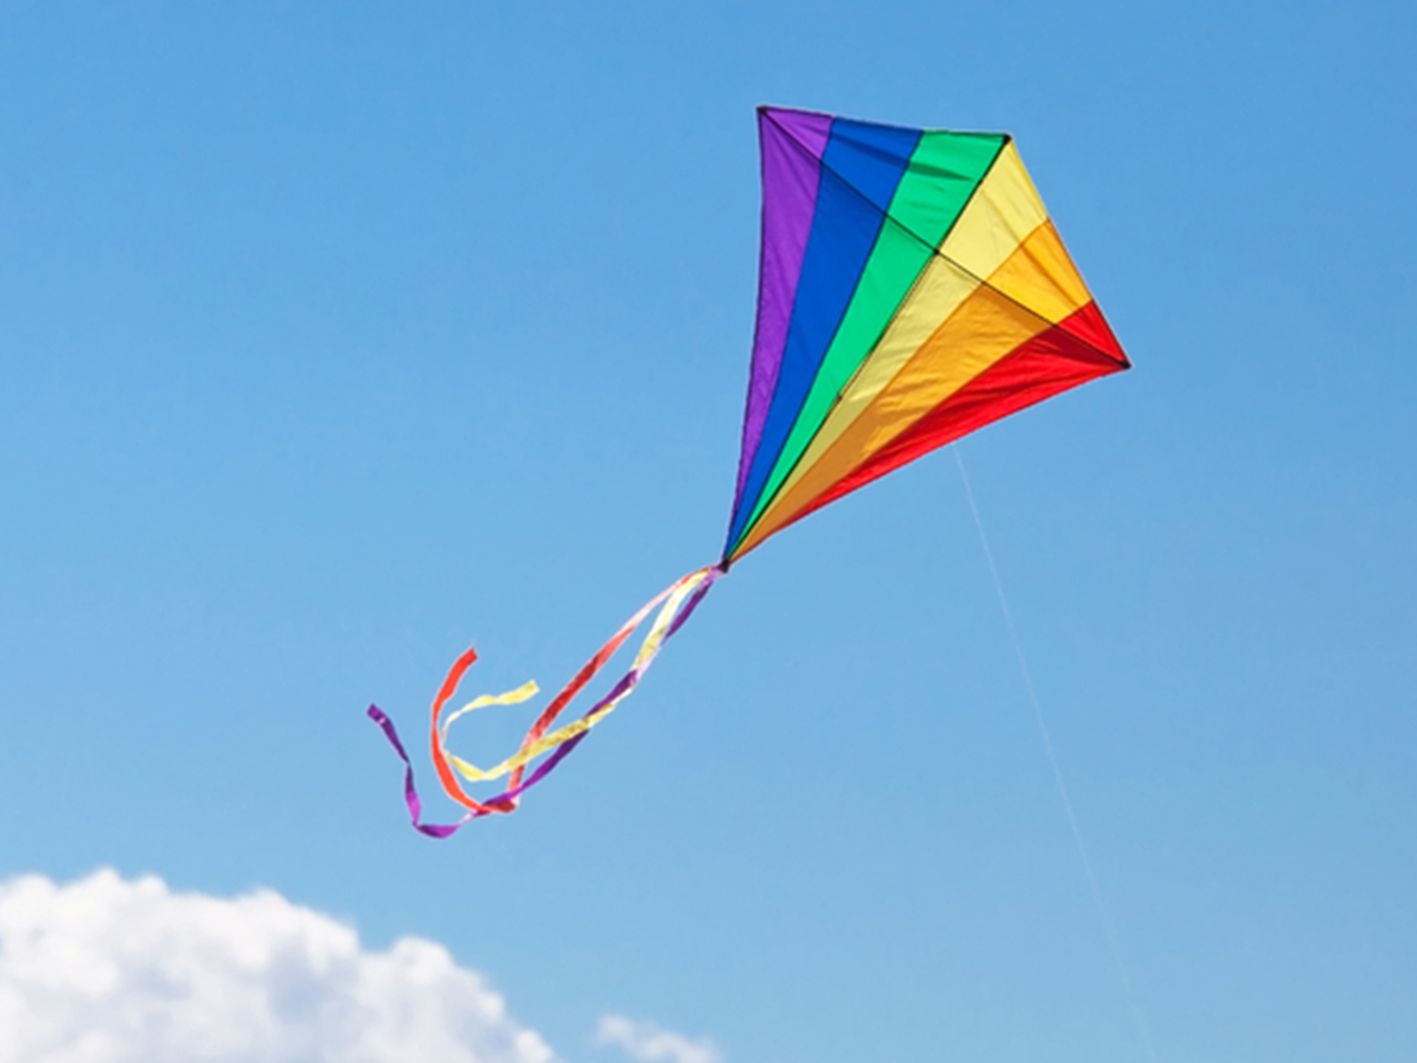 Kites Can Help Illustrate How The Holy Spirit Works In Our